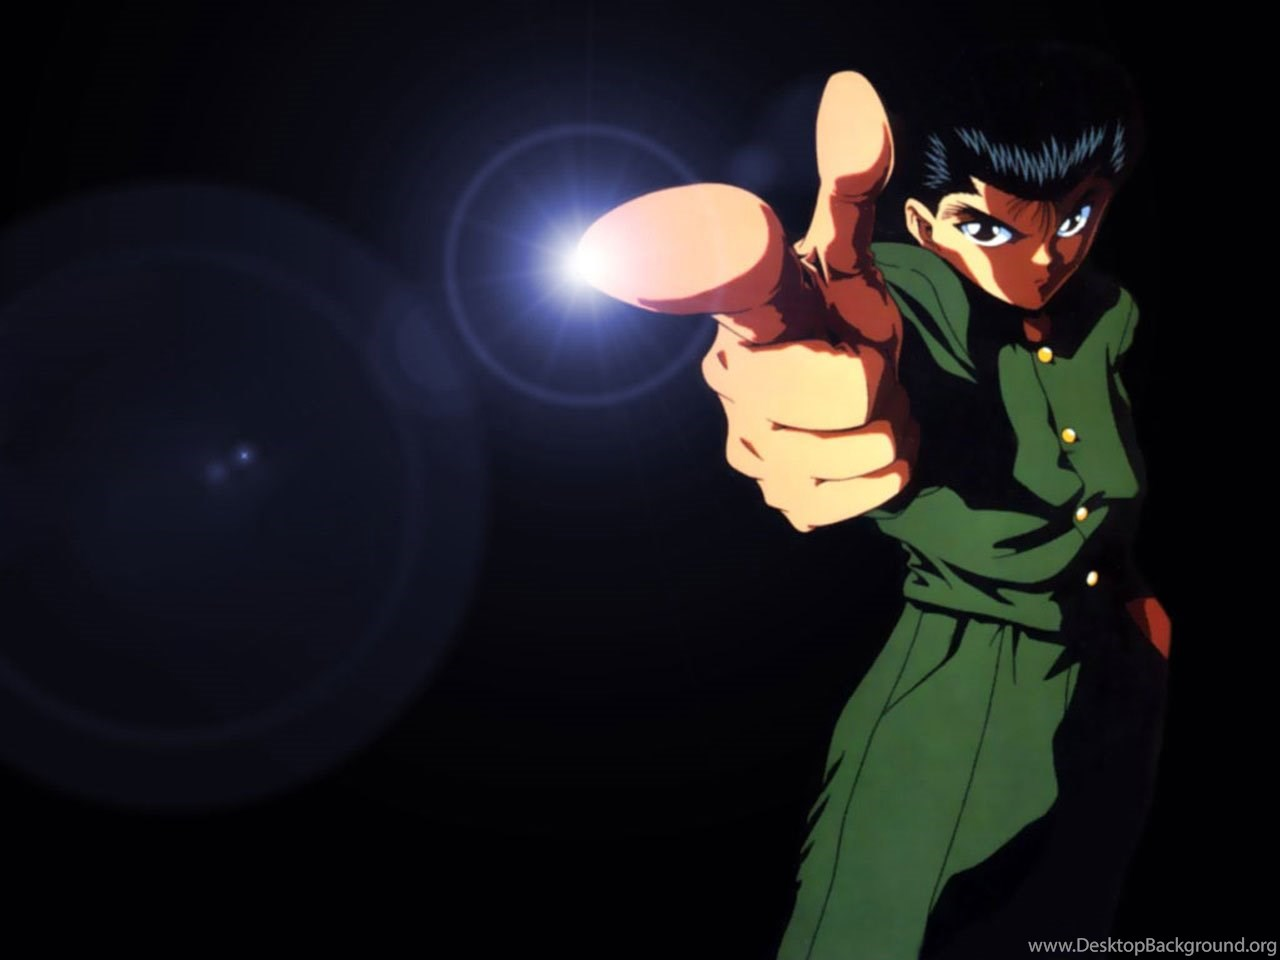 Yuyu Hakusho Hd Wallpapers And Backgrounds Desktop Background